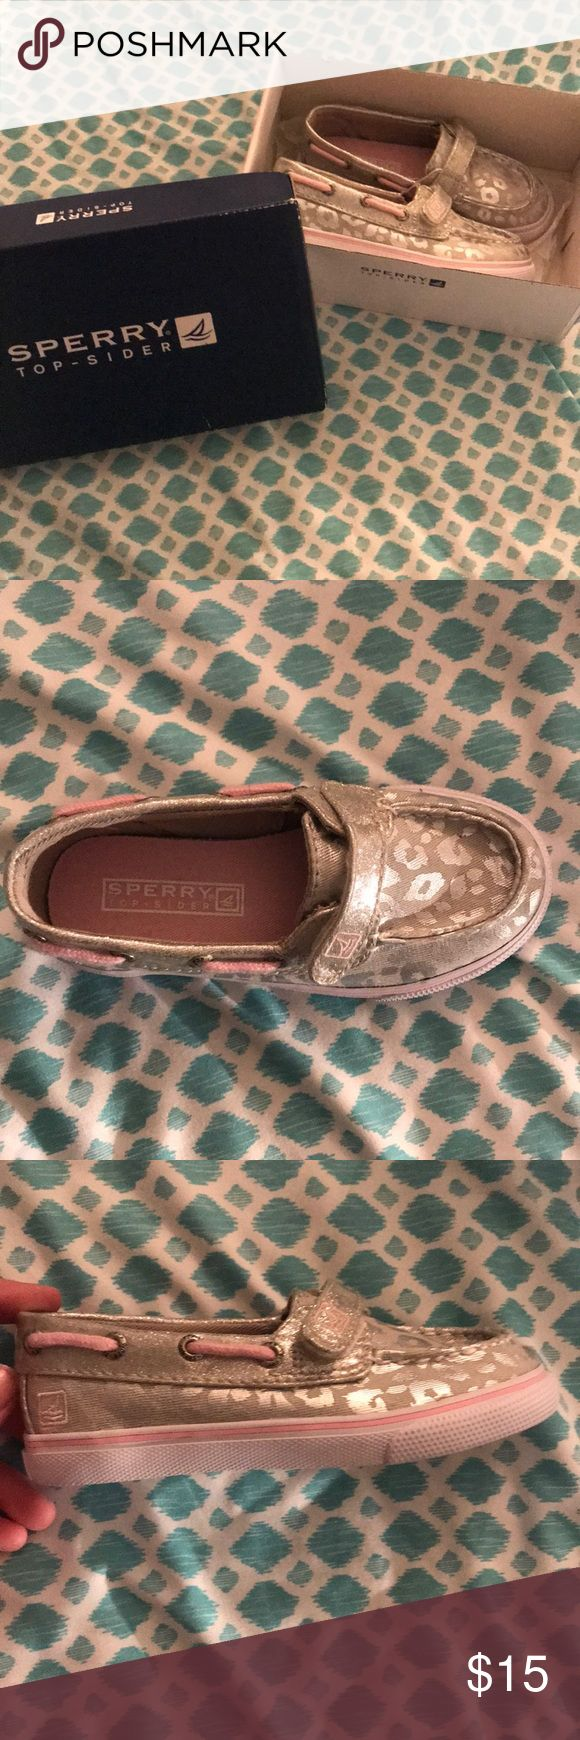 Sperry's for girls Cute cheetah print velcro Sperrys for any little girl casual or dressy. Perfect for anyone💗 NEVER WORN! Come in box Sperry Top-Sider Shoes Dress Shoes